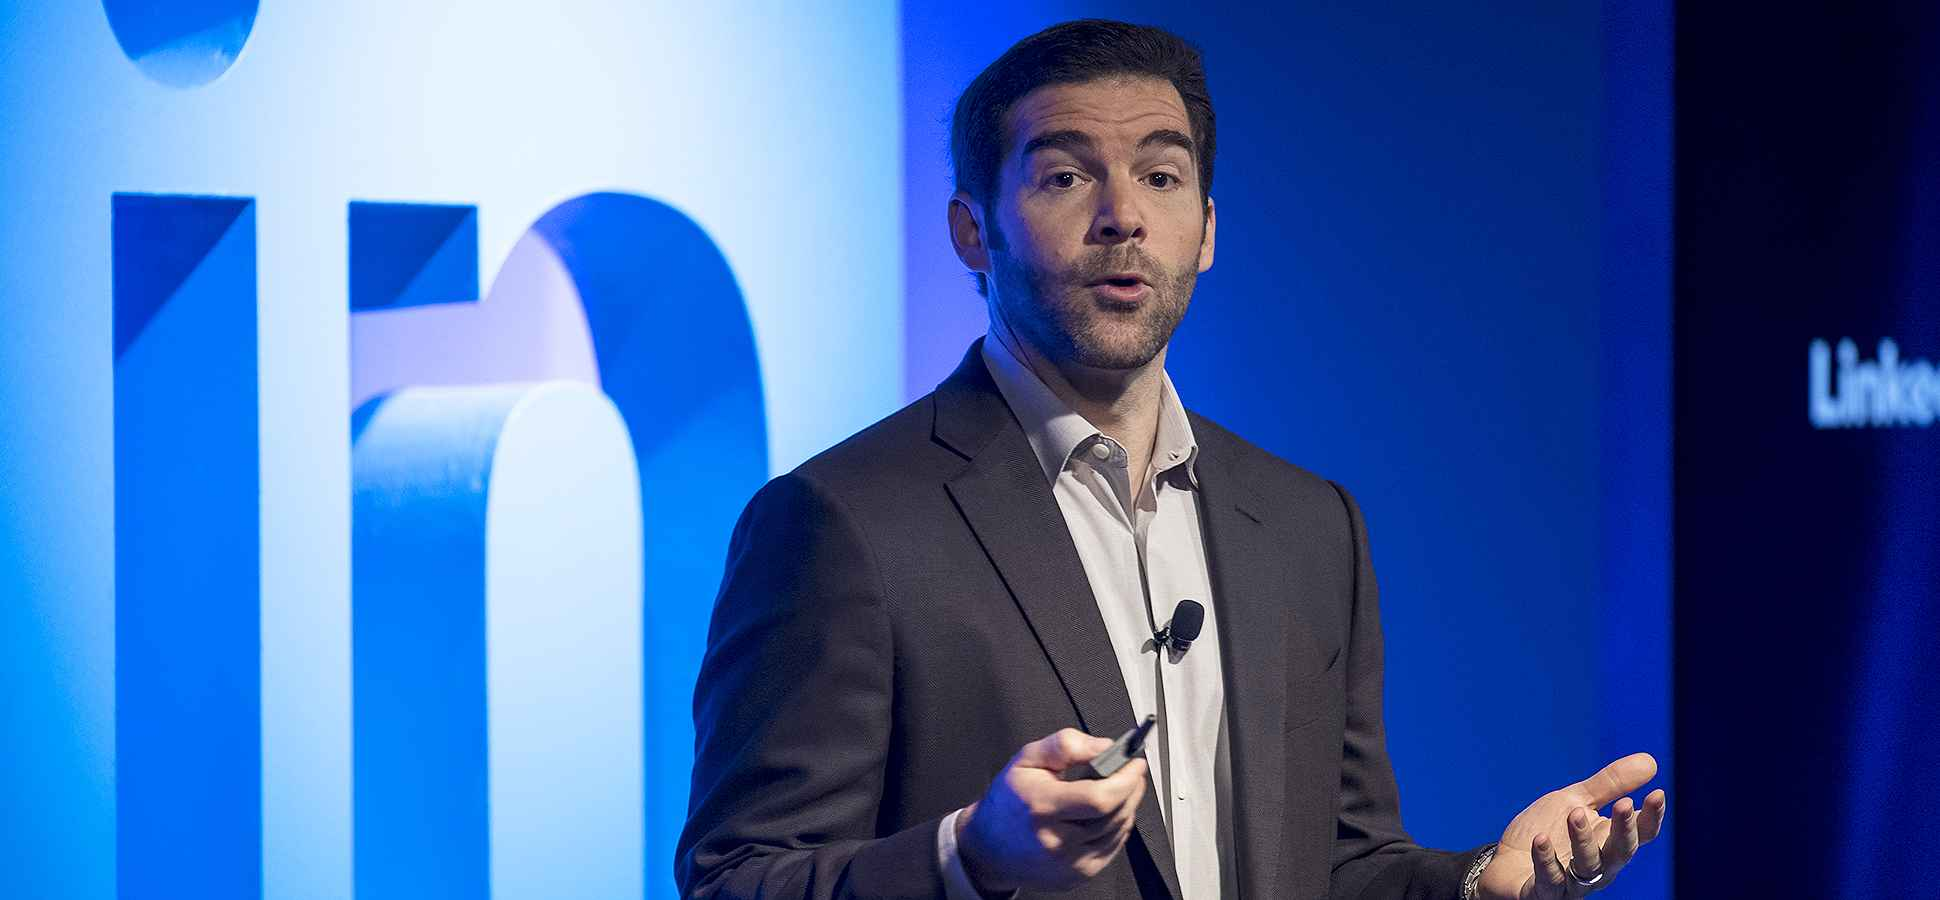 LinkedIn Is the New Facebook: Here's What You Need to Know